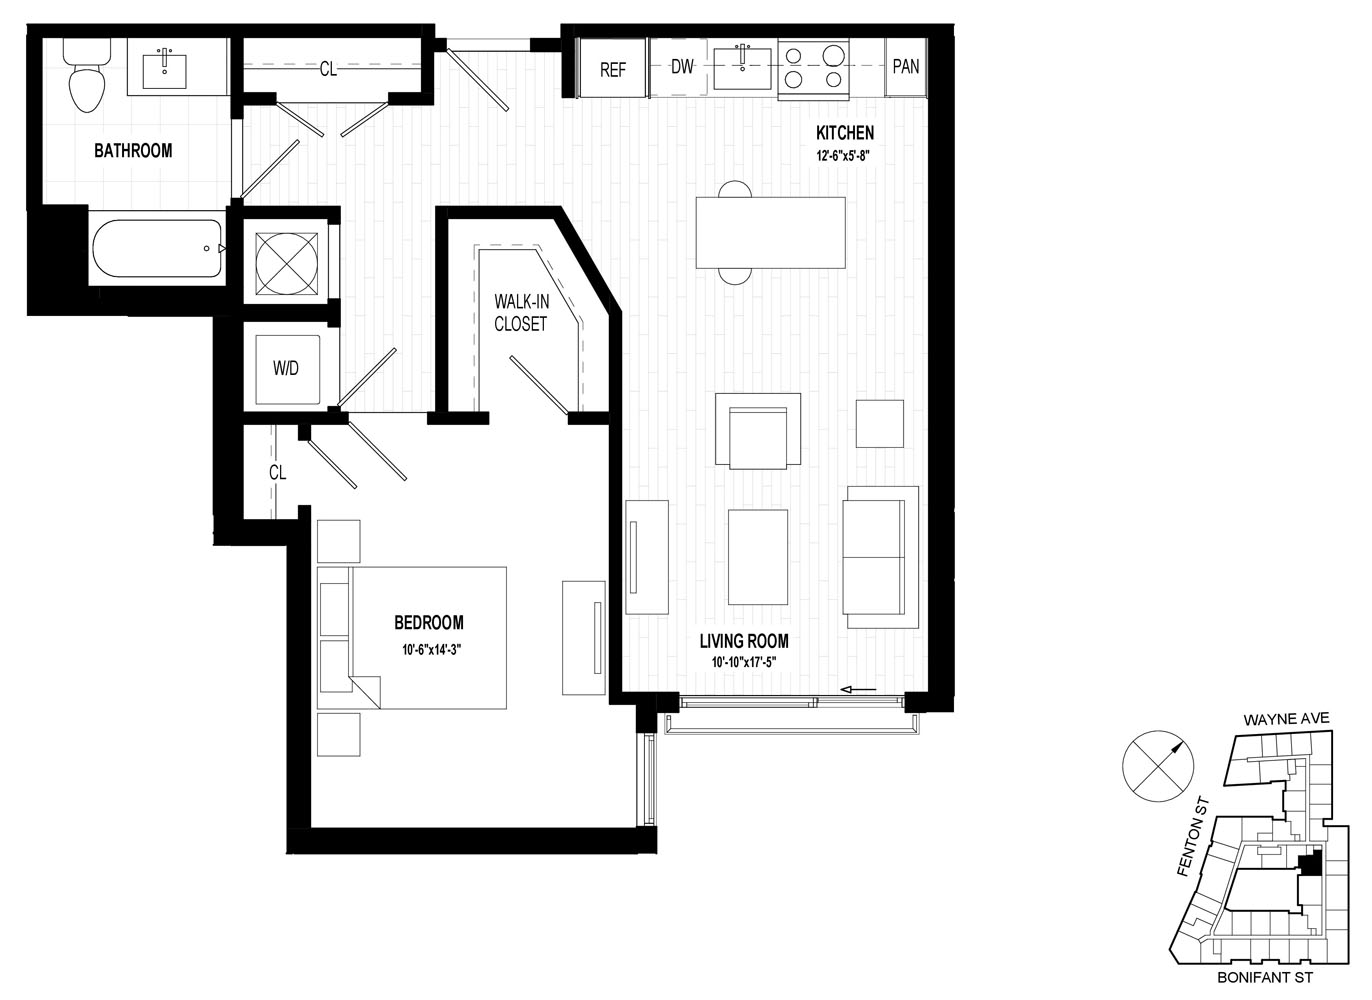 P0578887 761aa21 central a03a 705 2 floorplan